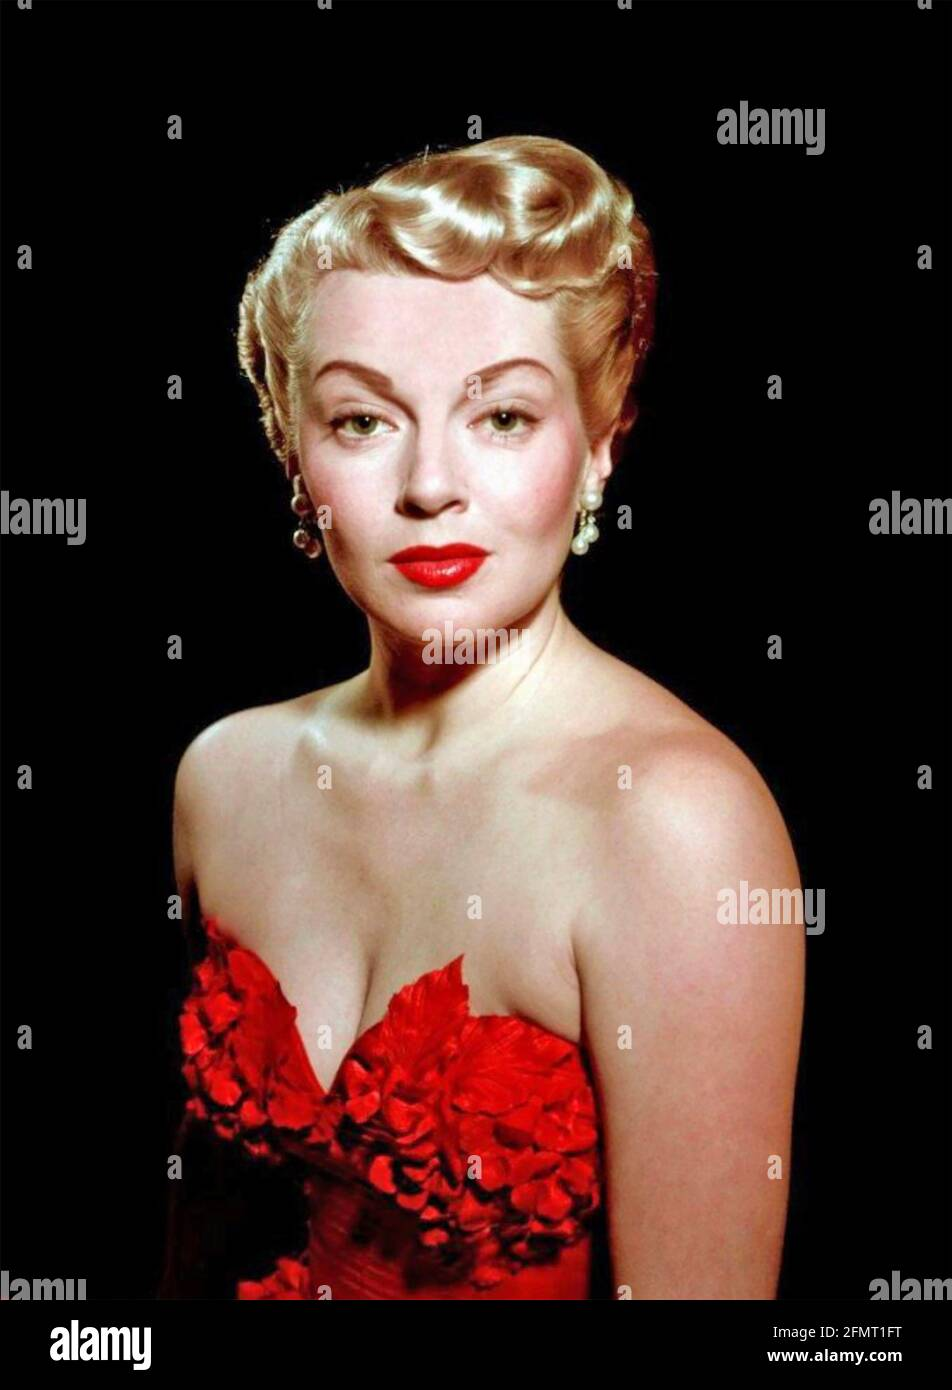 LANA TURNER (1921-1995) actrice américaine vers 1947 Banque D'Images